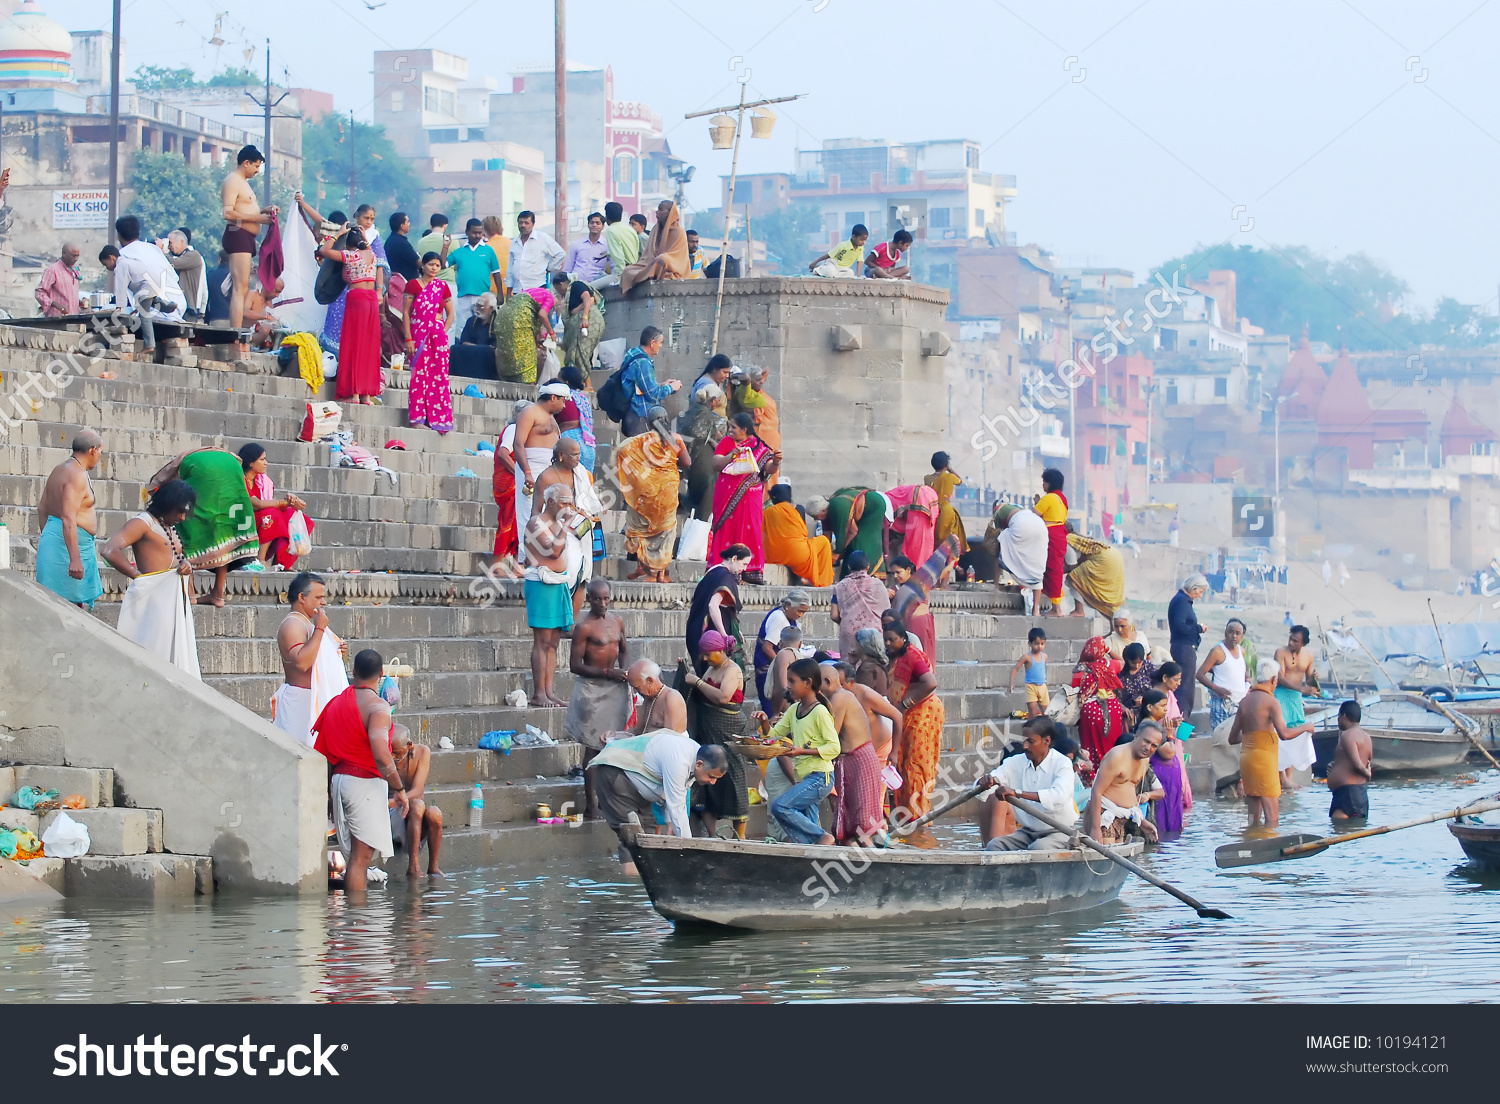 Ganga river clipart jpg transparent library Colorful Hindu People Bathing Ganges River Stock Photo 10194121 ... jpg transparent library